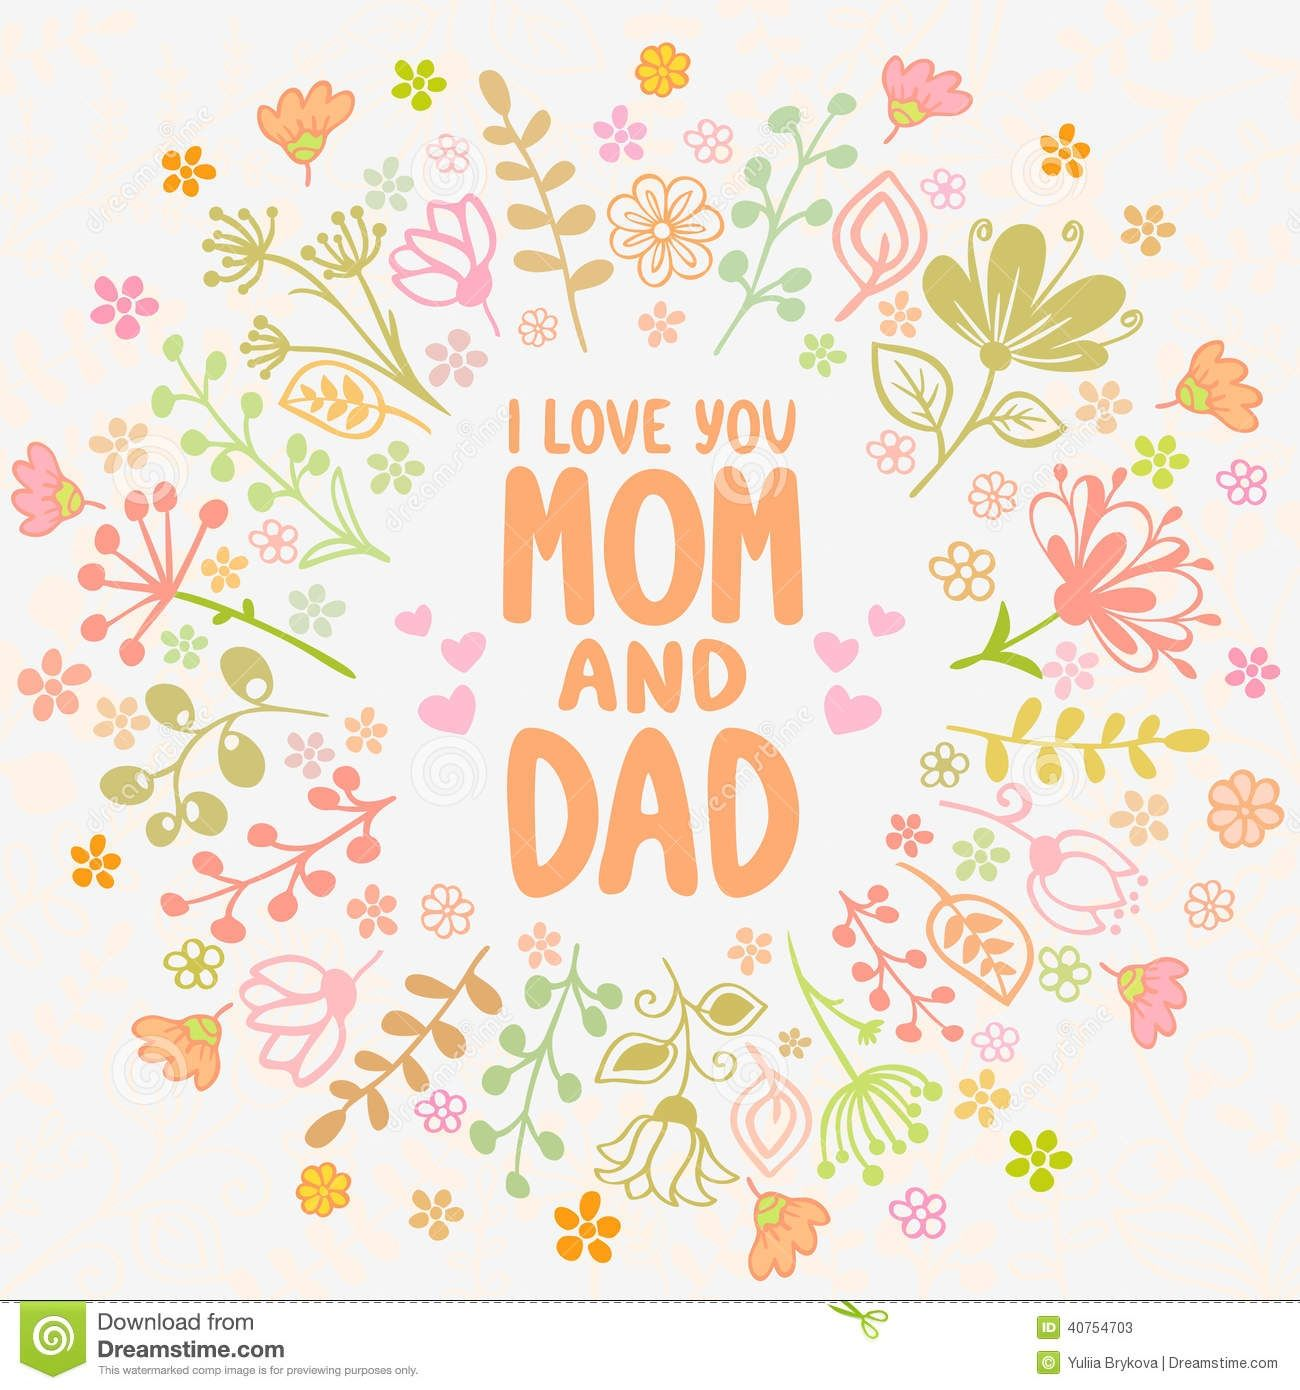 Free images of love you mom and dad download love you - I love you daddy download ...